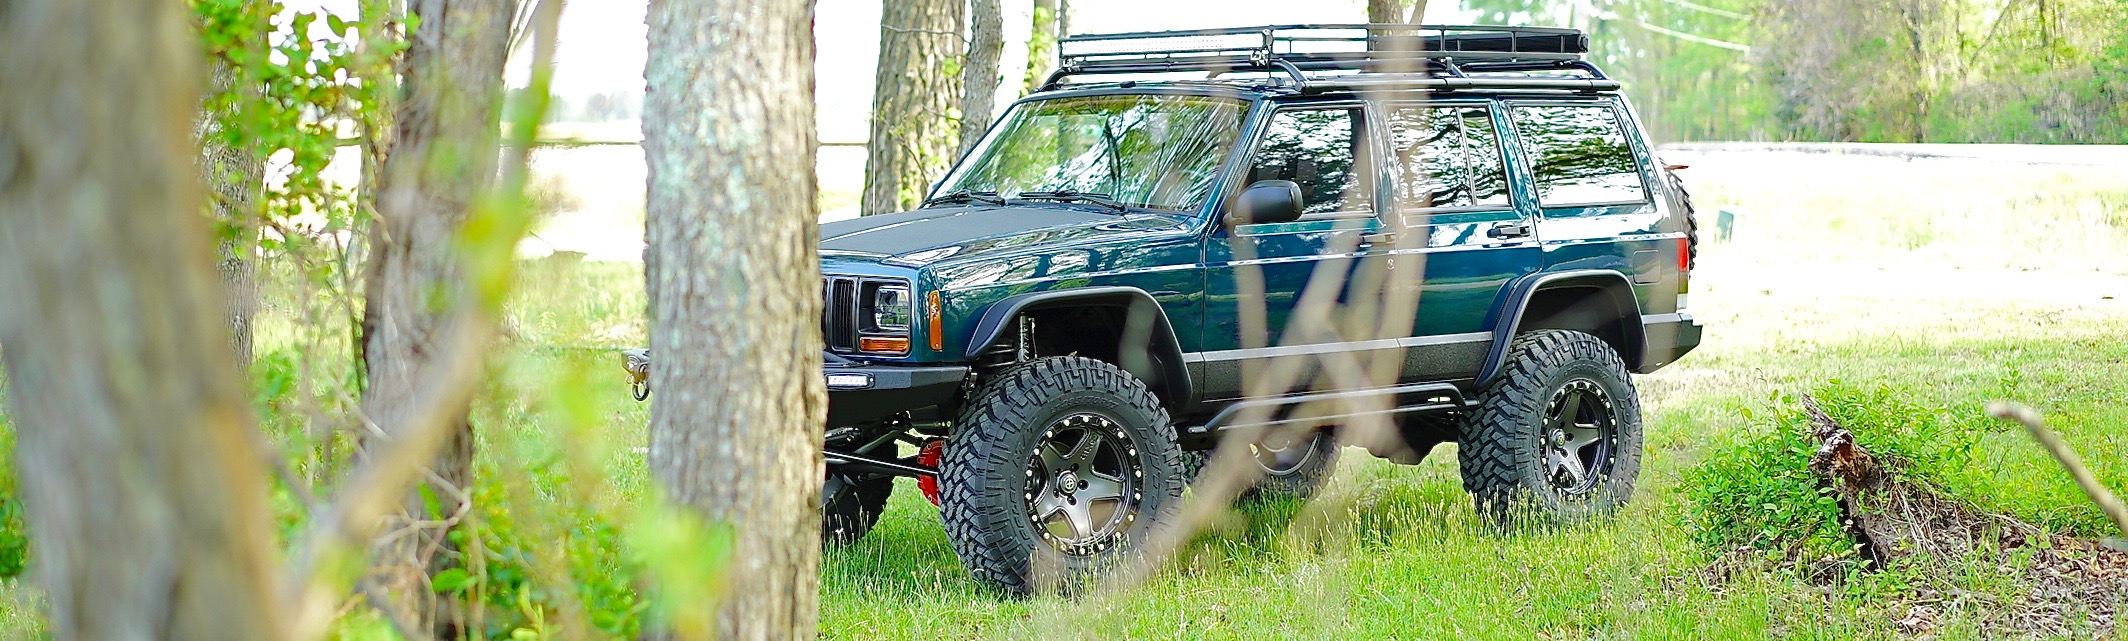 hight resolution of lifted jeep cherokee for sale jeep cherokee xj for sale jeep cherokee lift kit